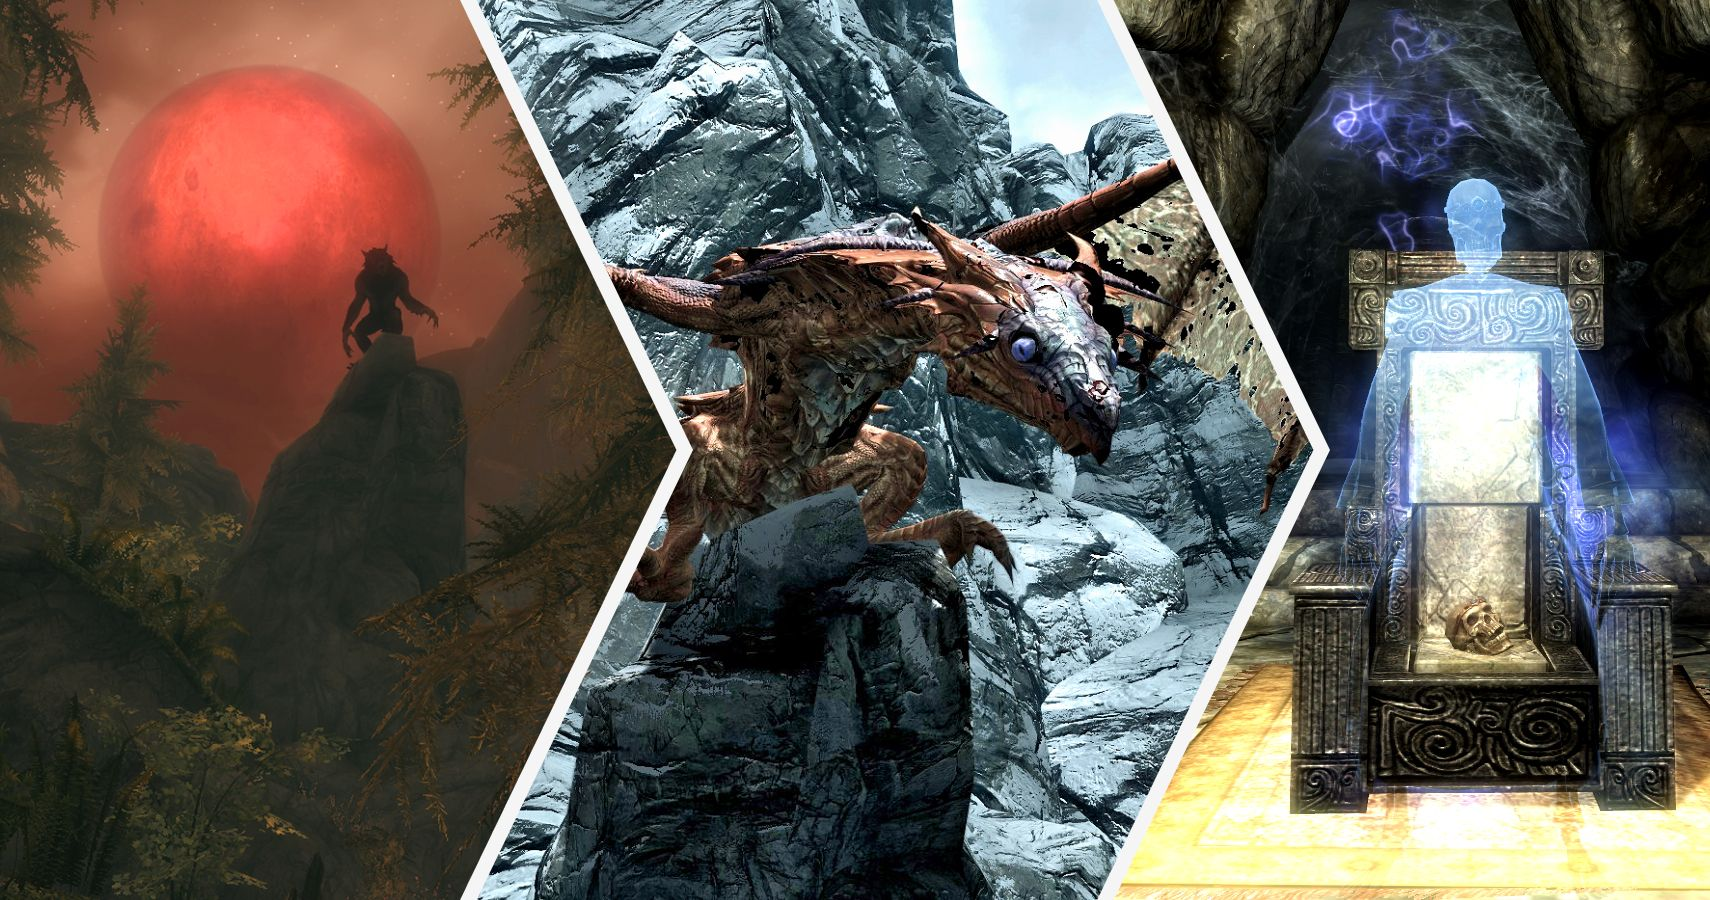 Skyrim: 15 Hidden Quests Every Player Needs To Complete (And